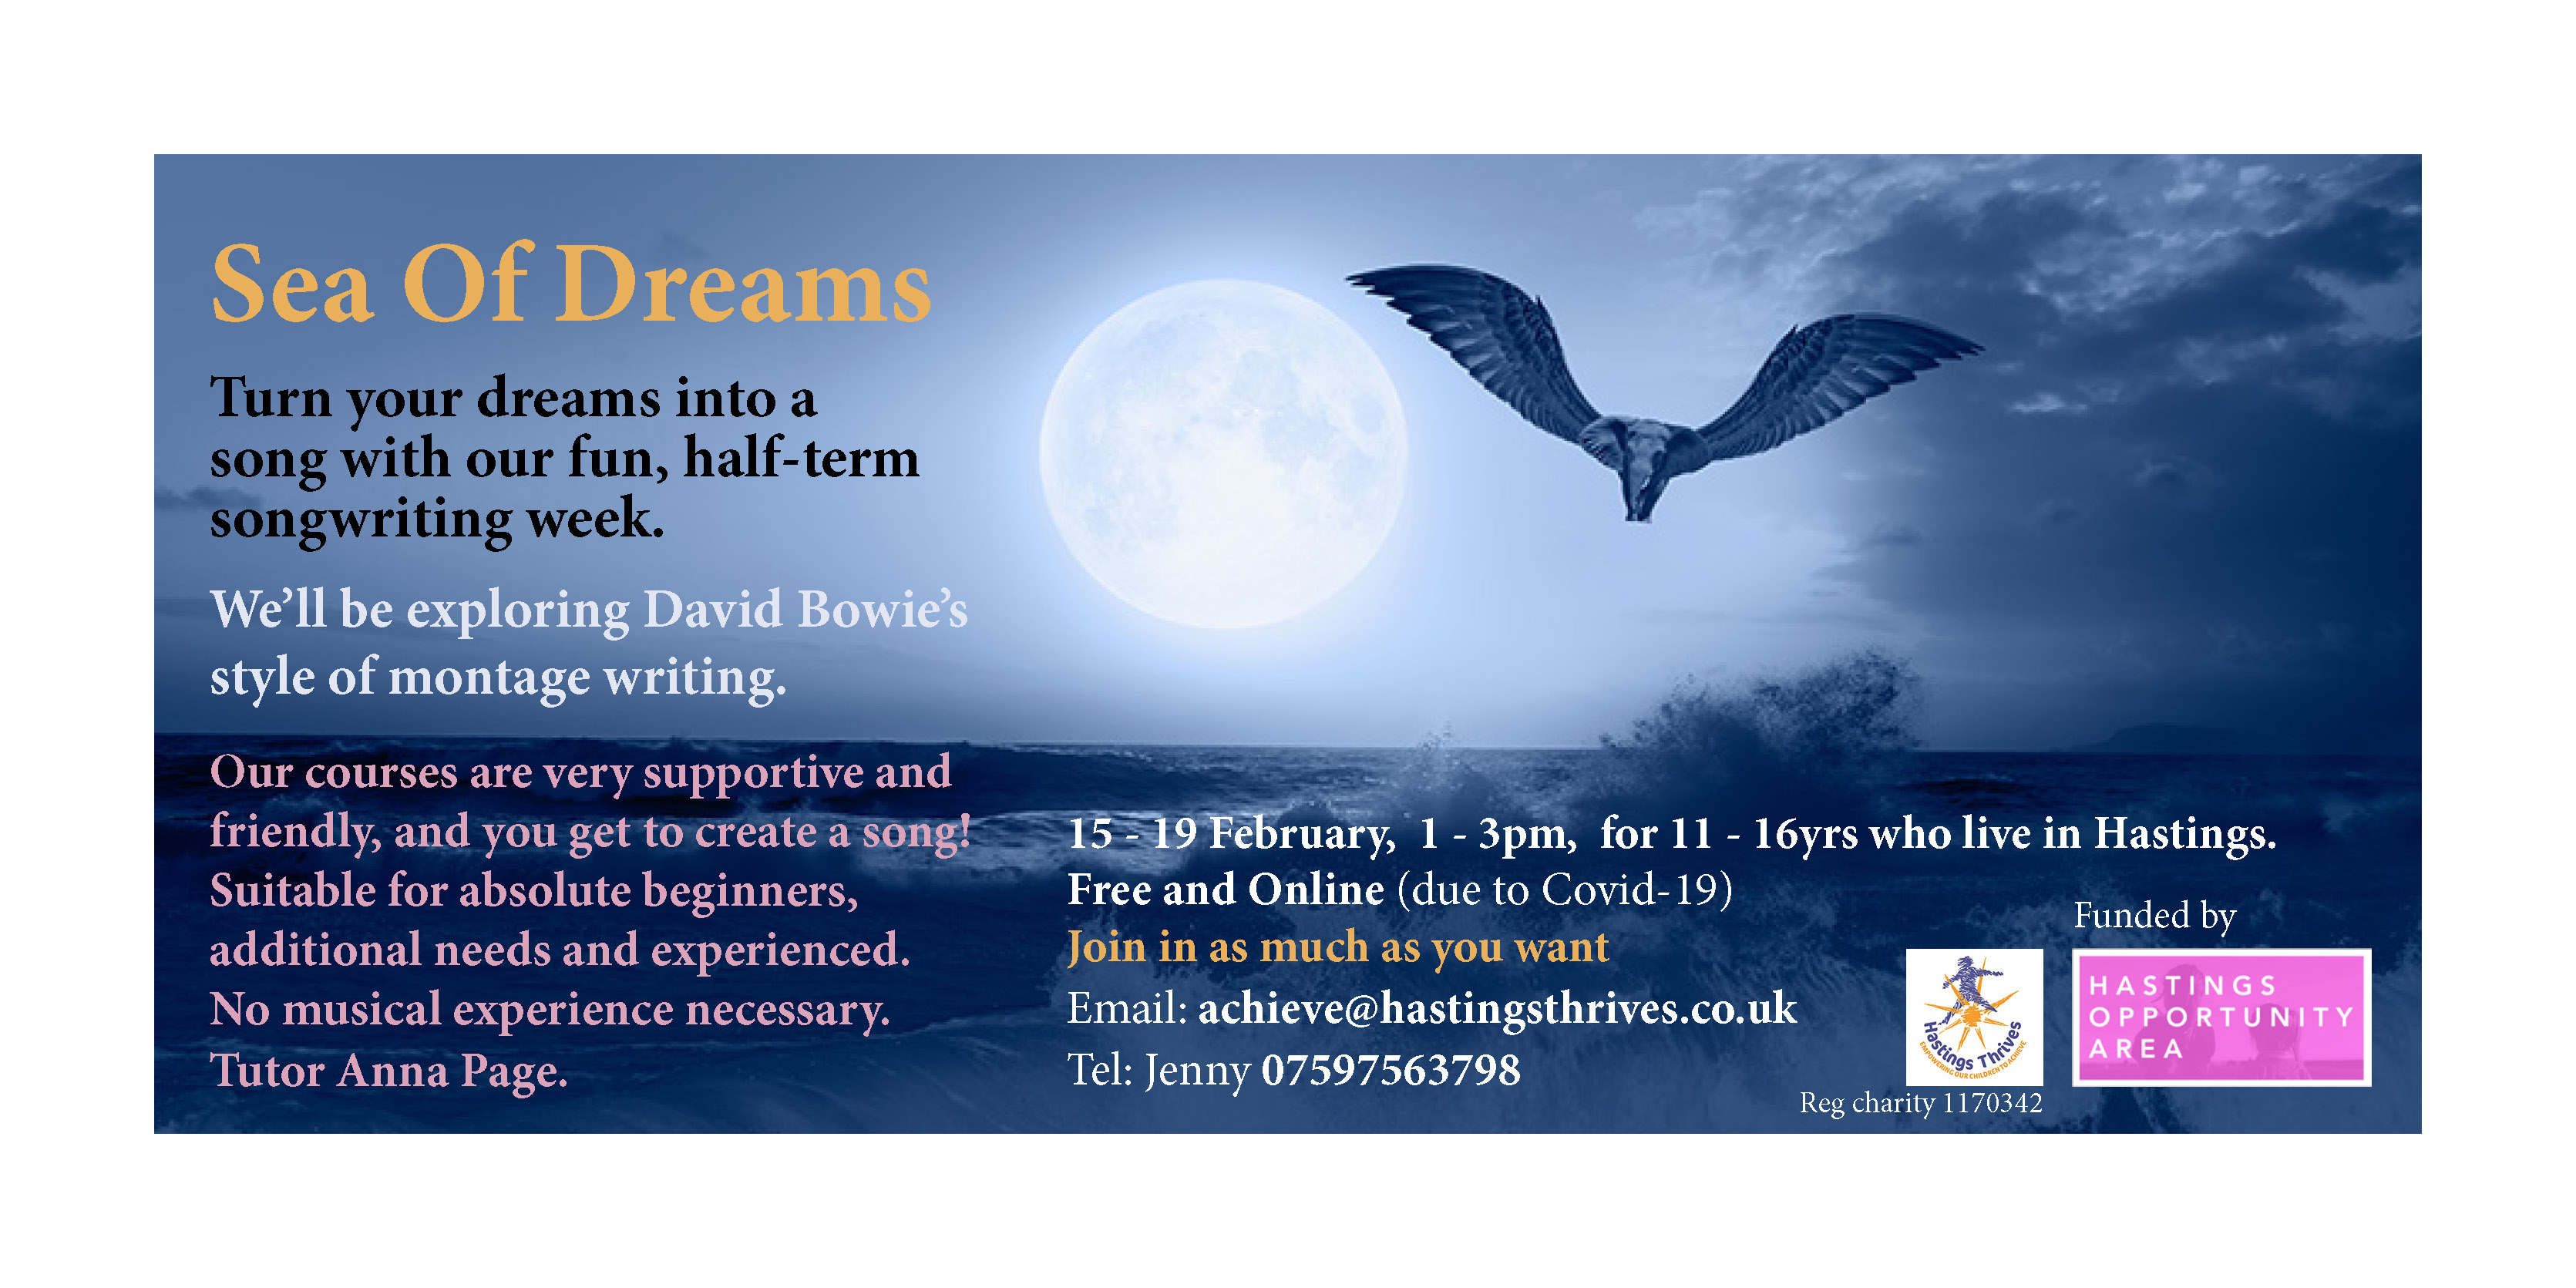 sea of dreams songwriting course hastings